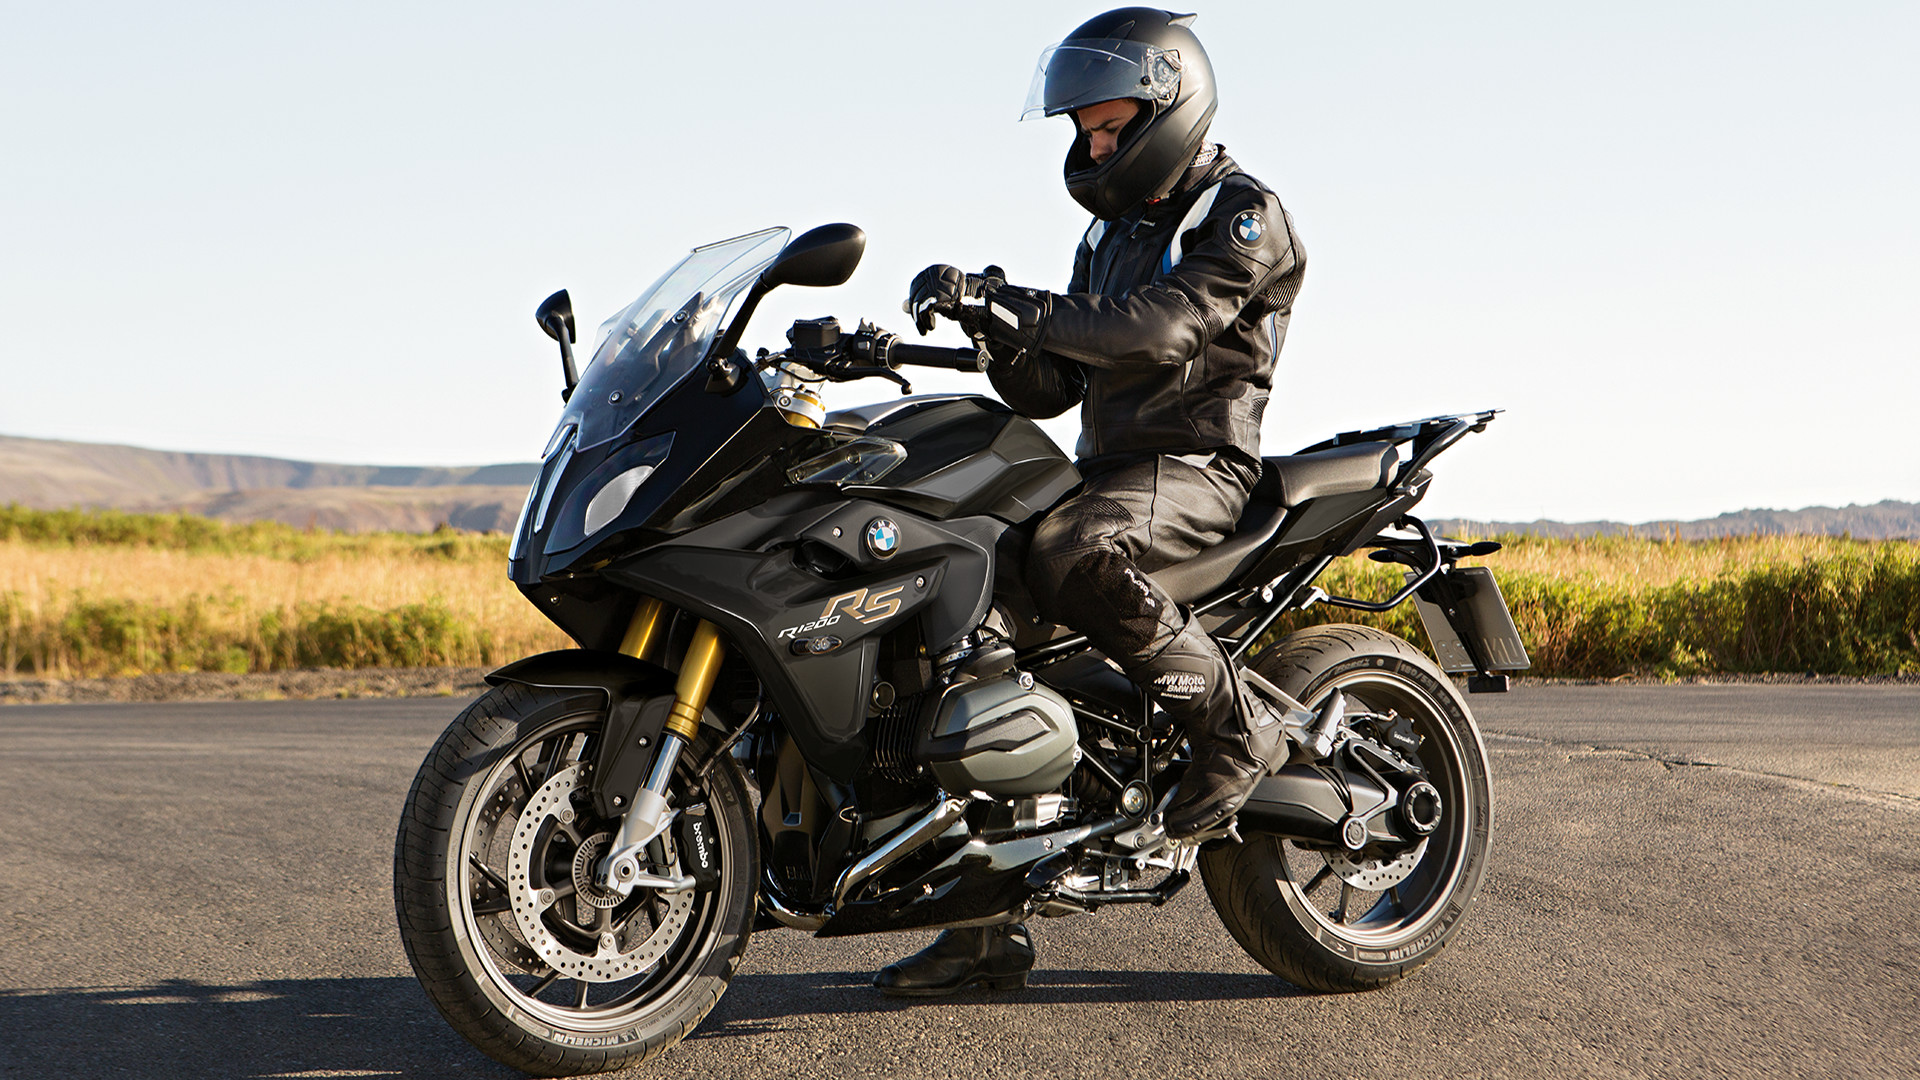 2019 Bmw R 1200 Rs Motorcycle Uae S Prices Specs